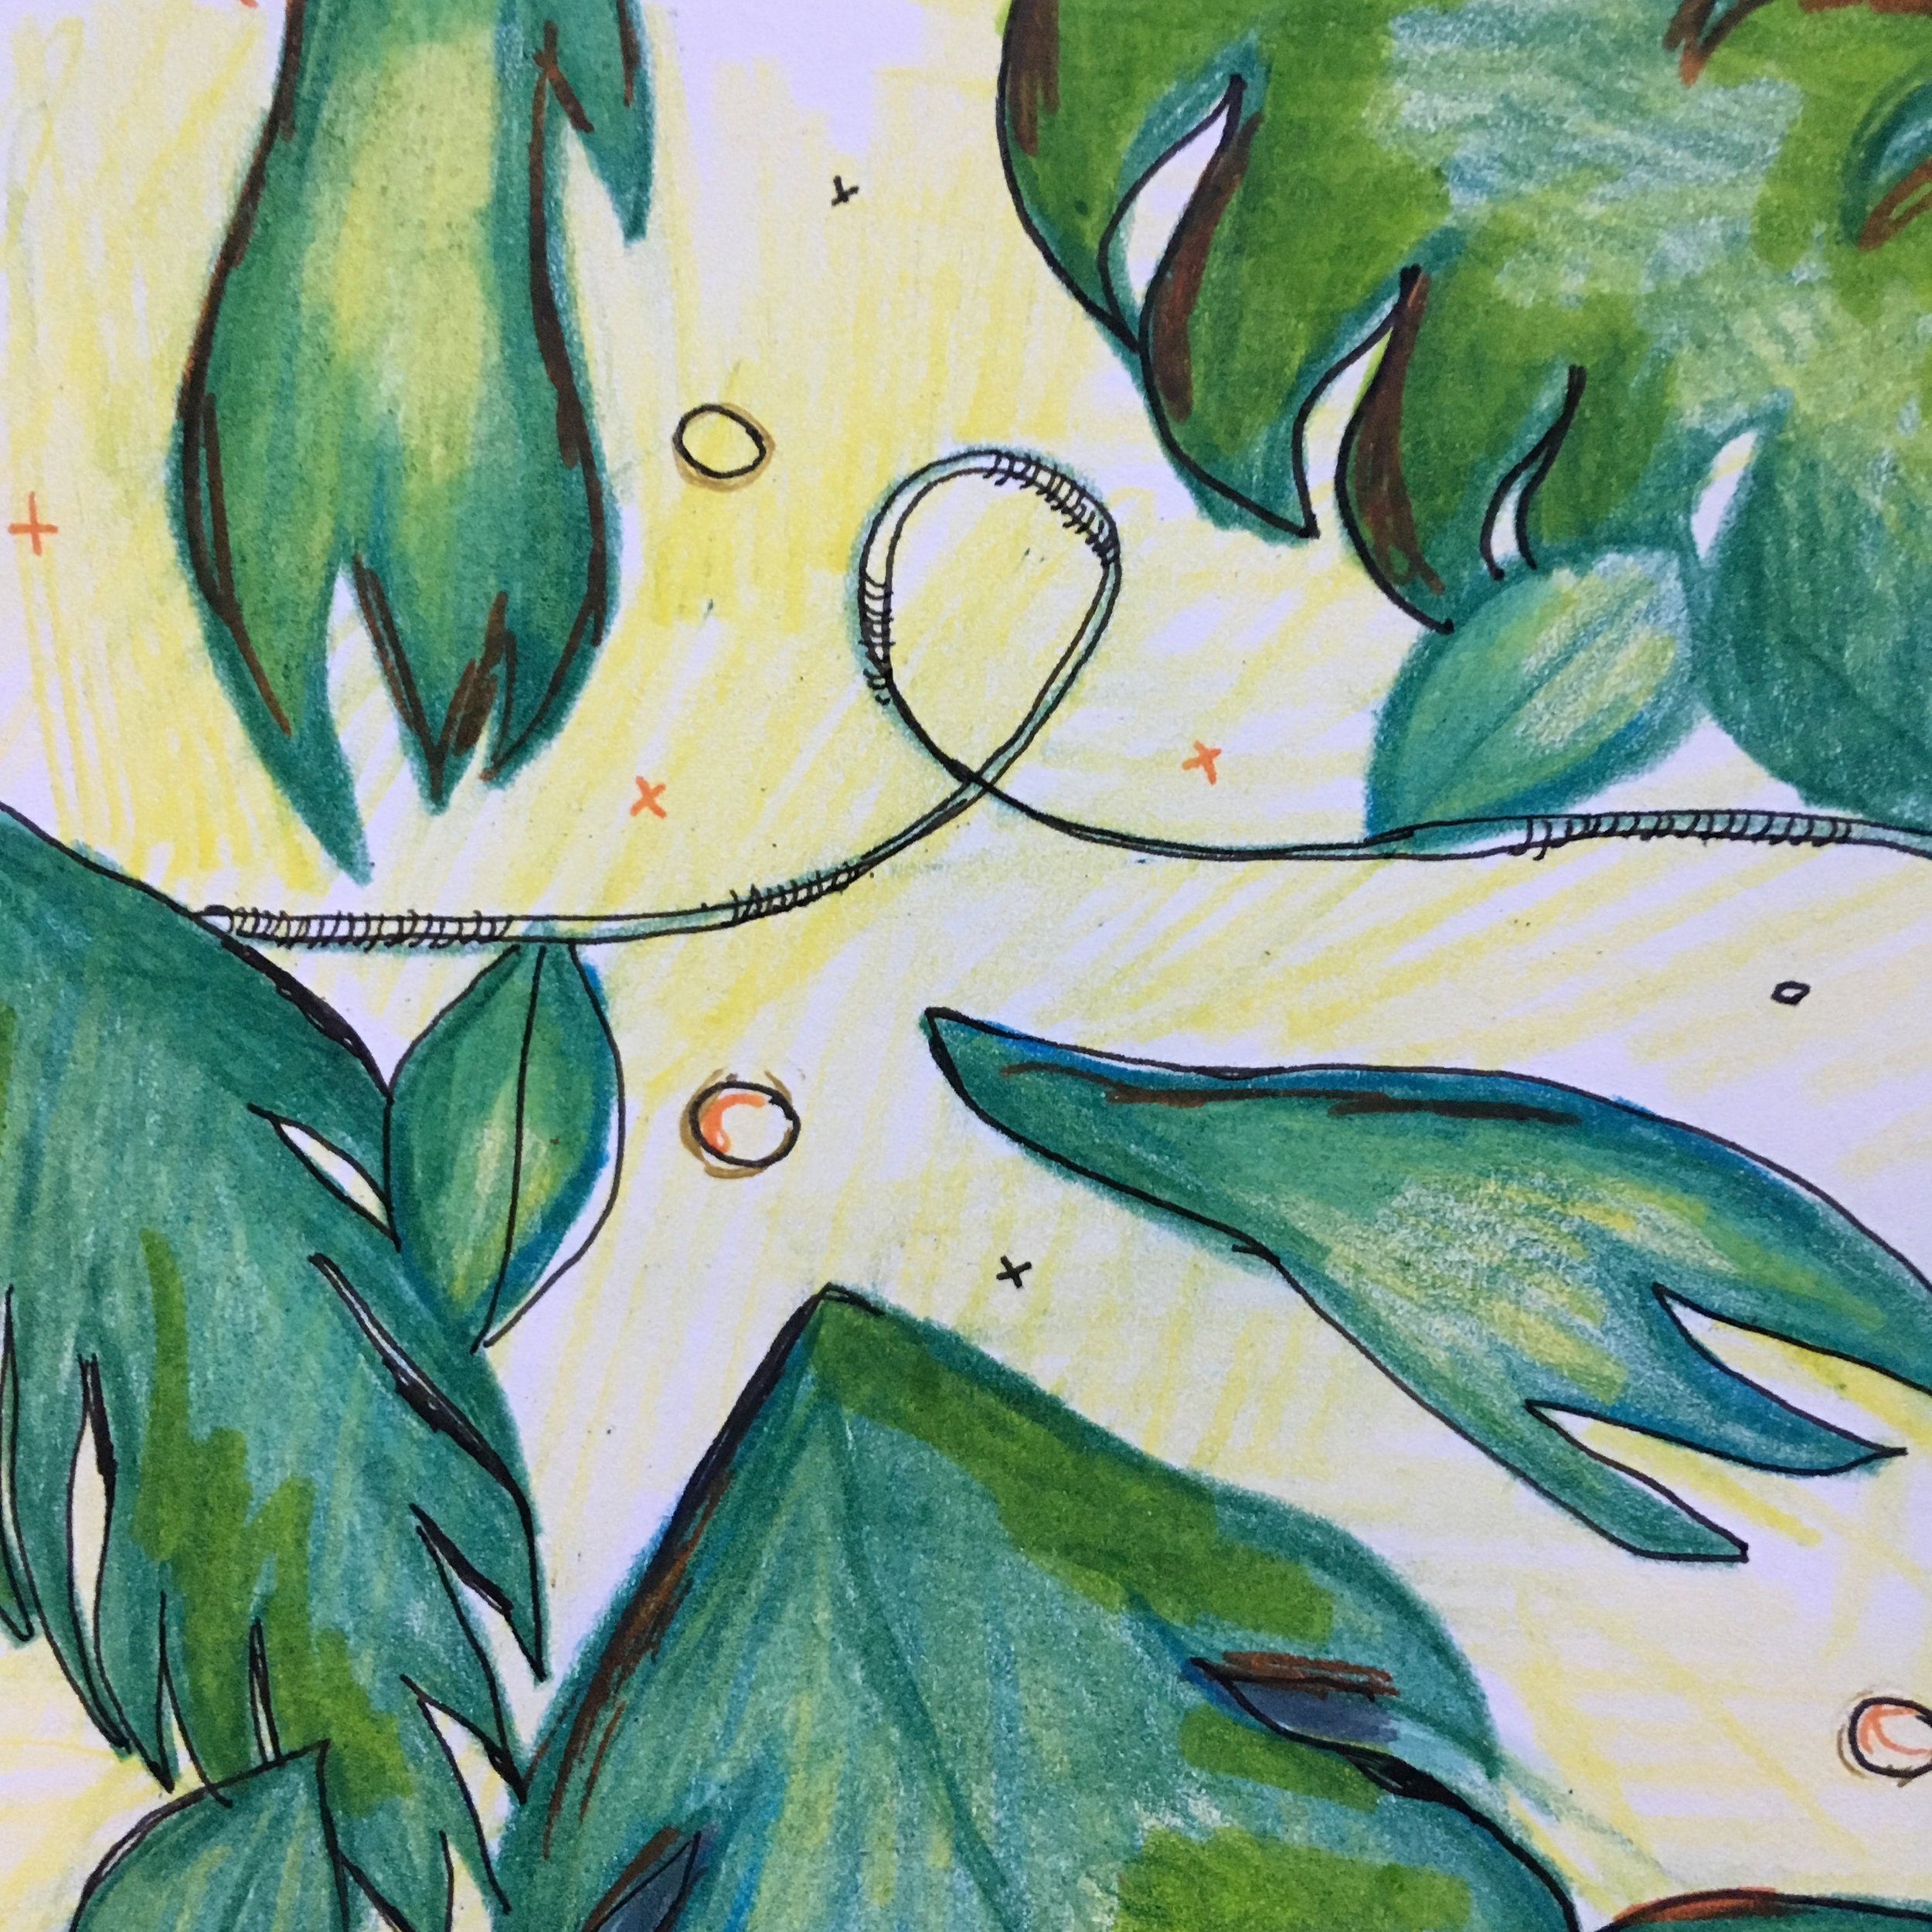 Abstract fern leaves - Color pencil and ink on Moleskine paper